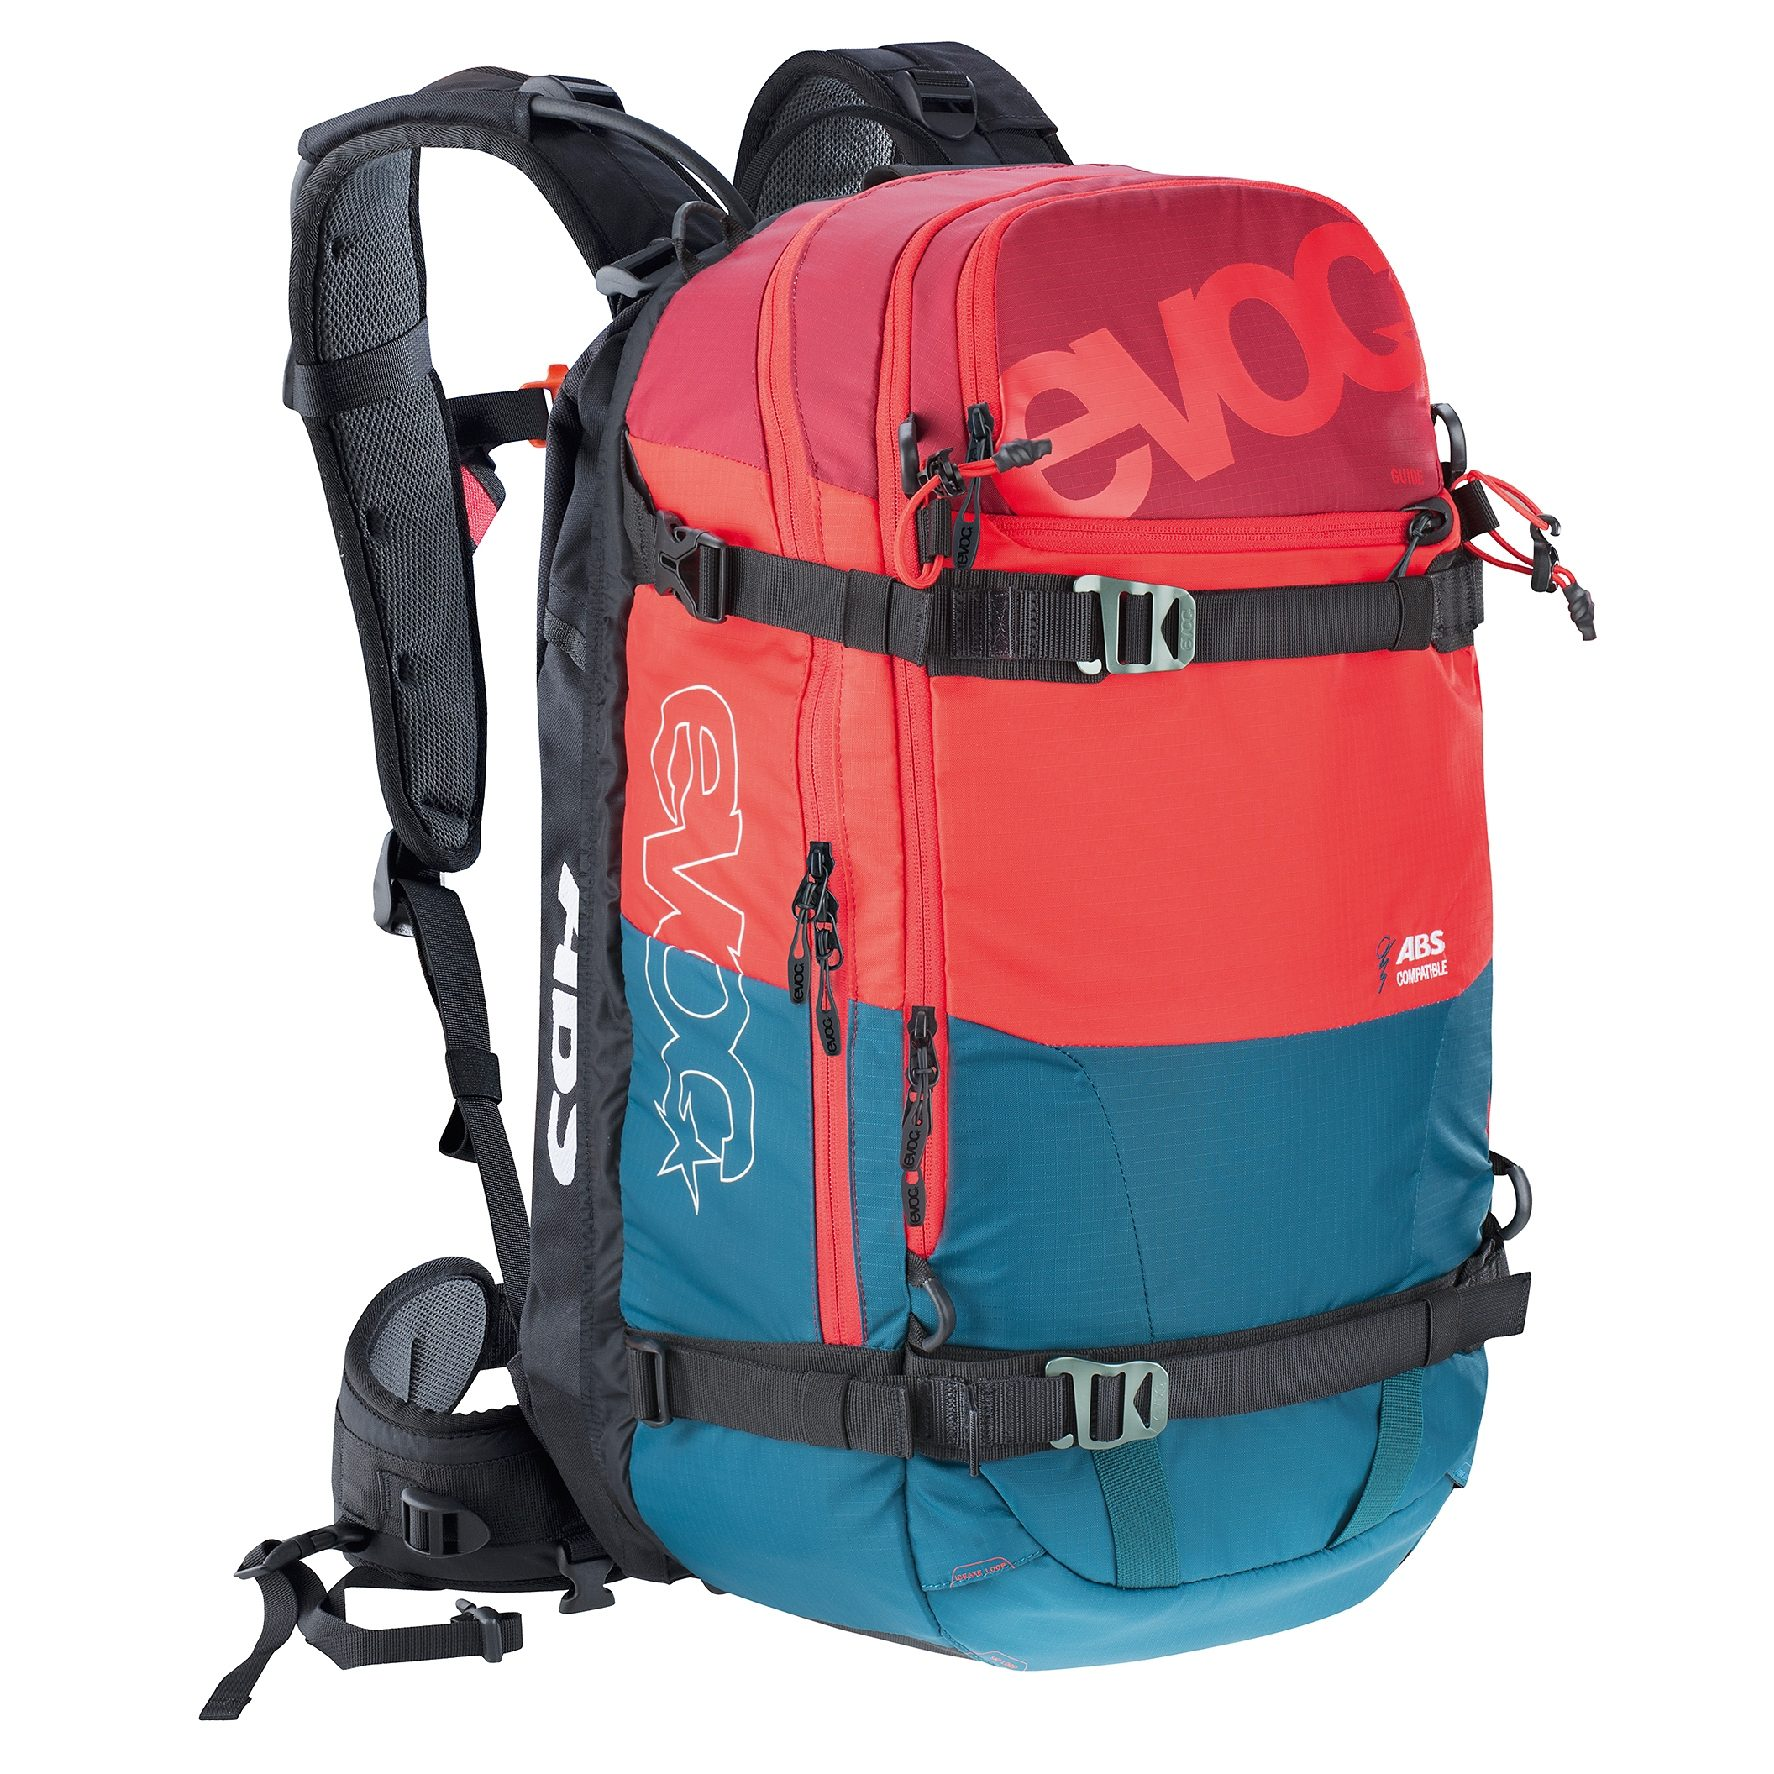 Evoc Lawinenrucksack »Zip-On ABS - Guide Team 30L«